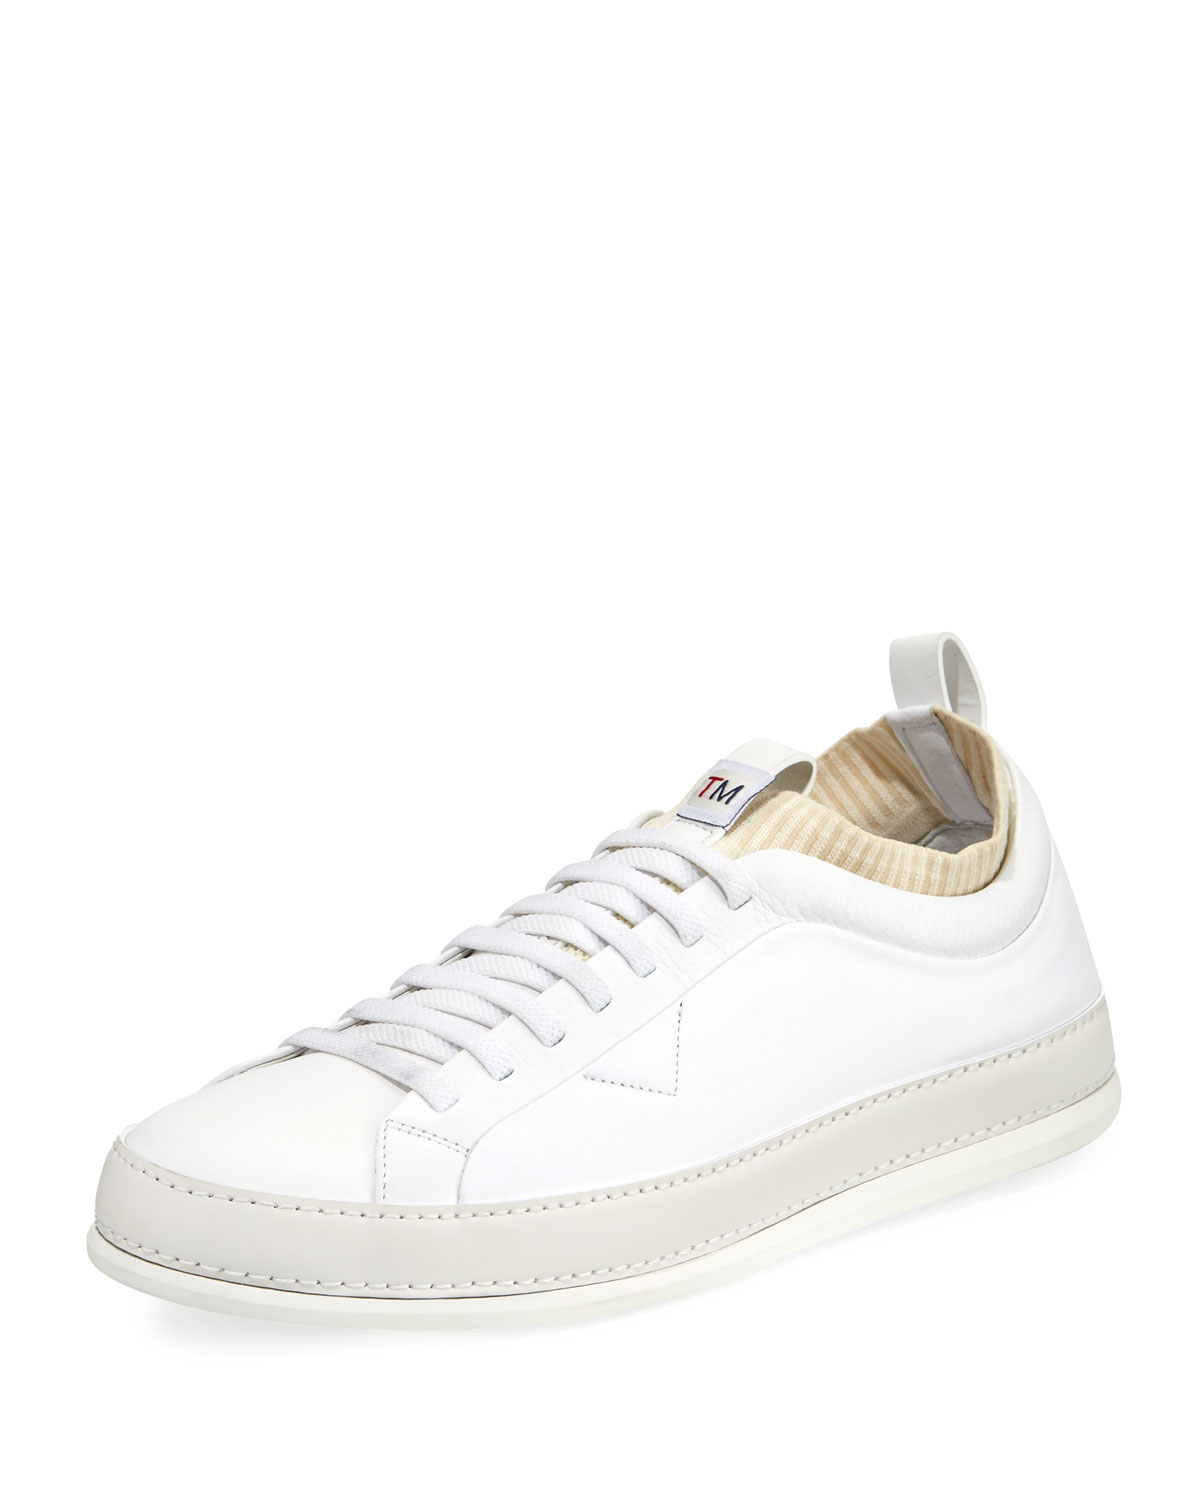 2e8a5883 Men's Imperia Low-Top Leather Sneakers